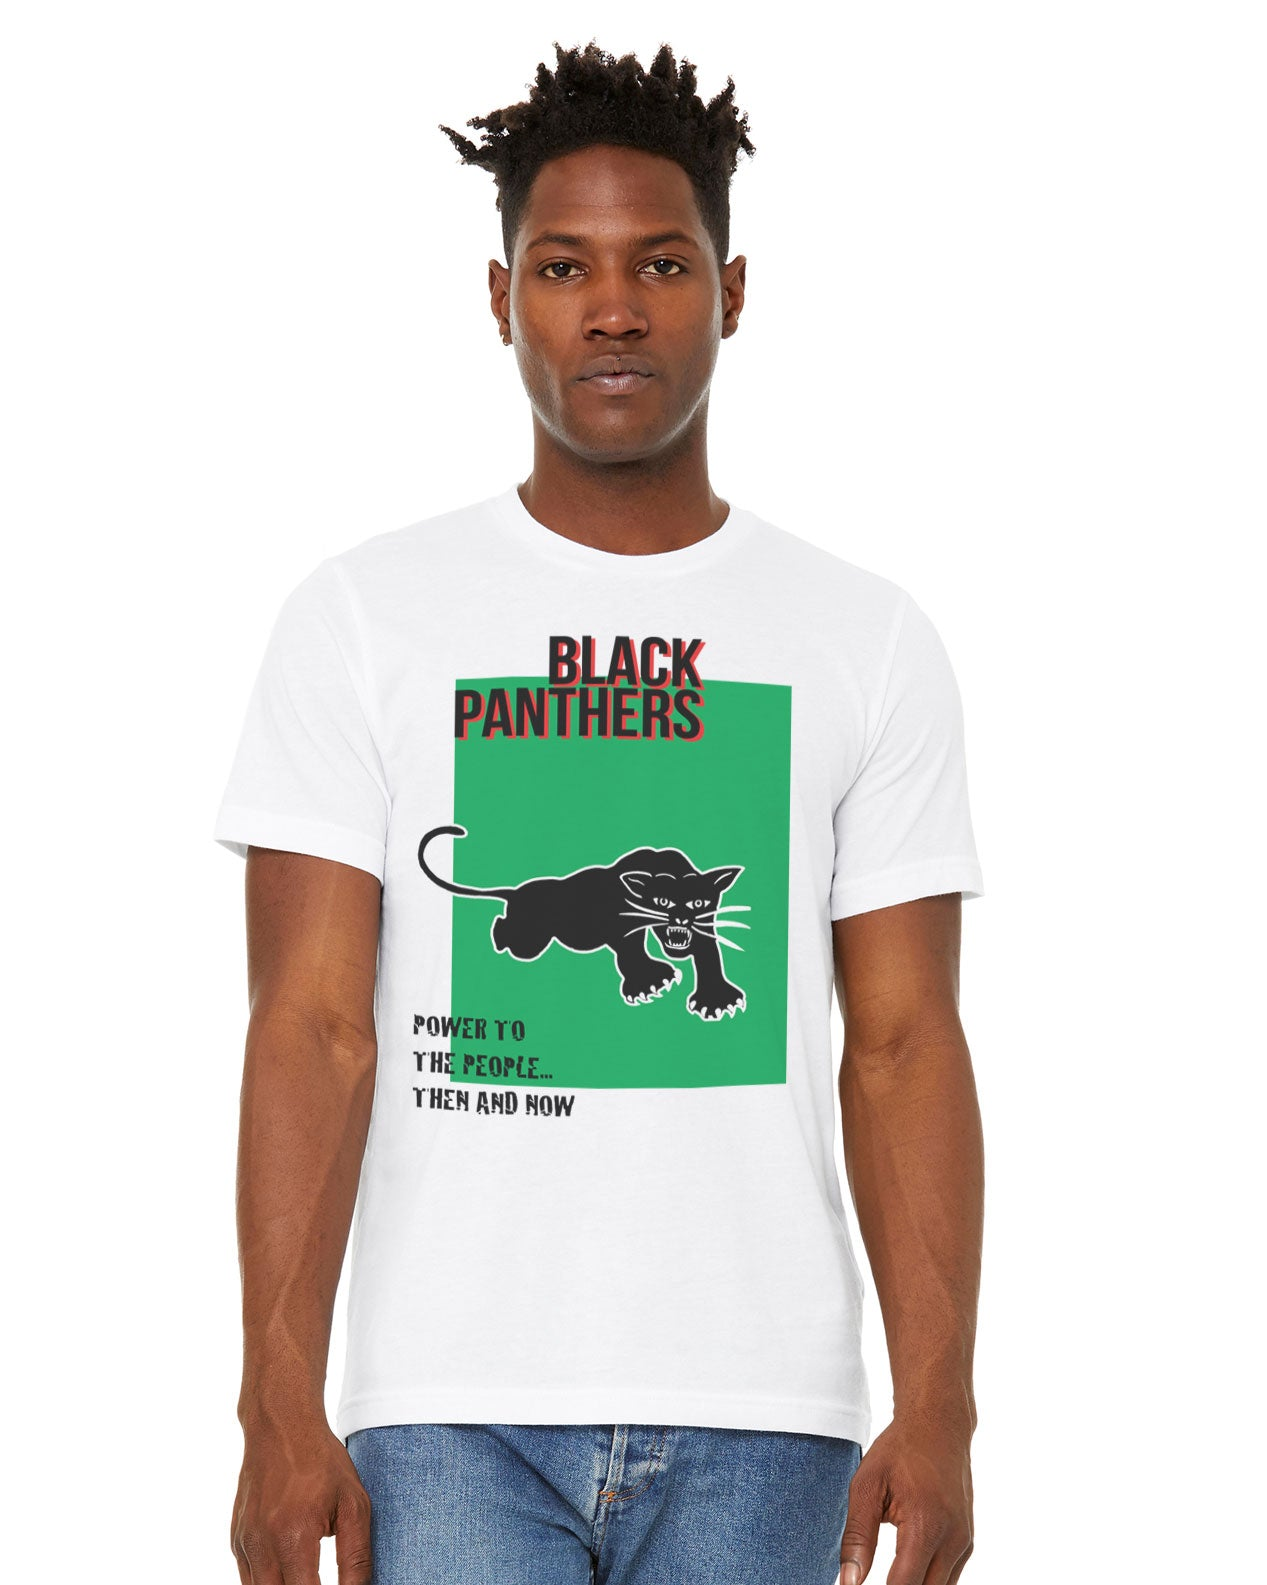 Higher Learning Black Panthers T Shirt-Luxury Brand LA - Luxury Brand LA - Shop Latest Trends and Hottest Apparel from Luxury Brand LA